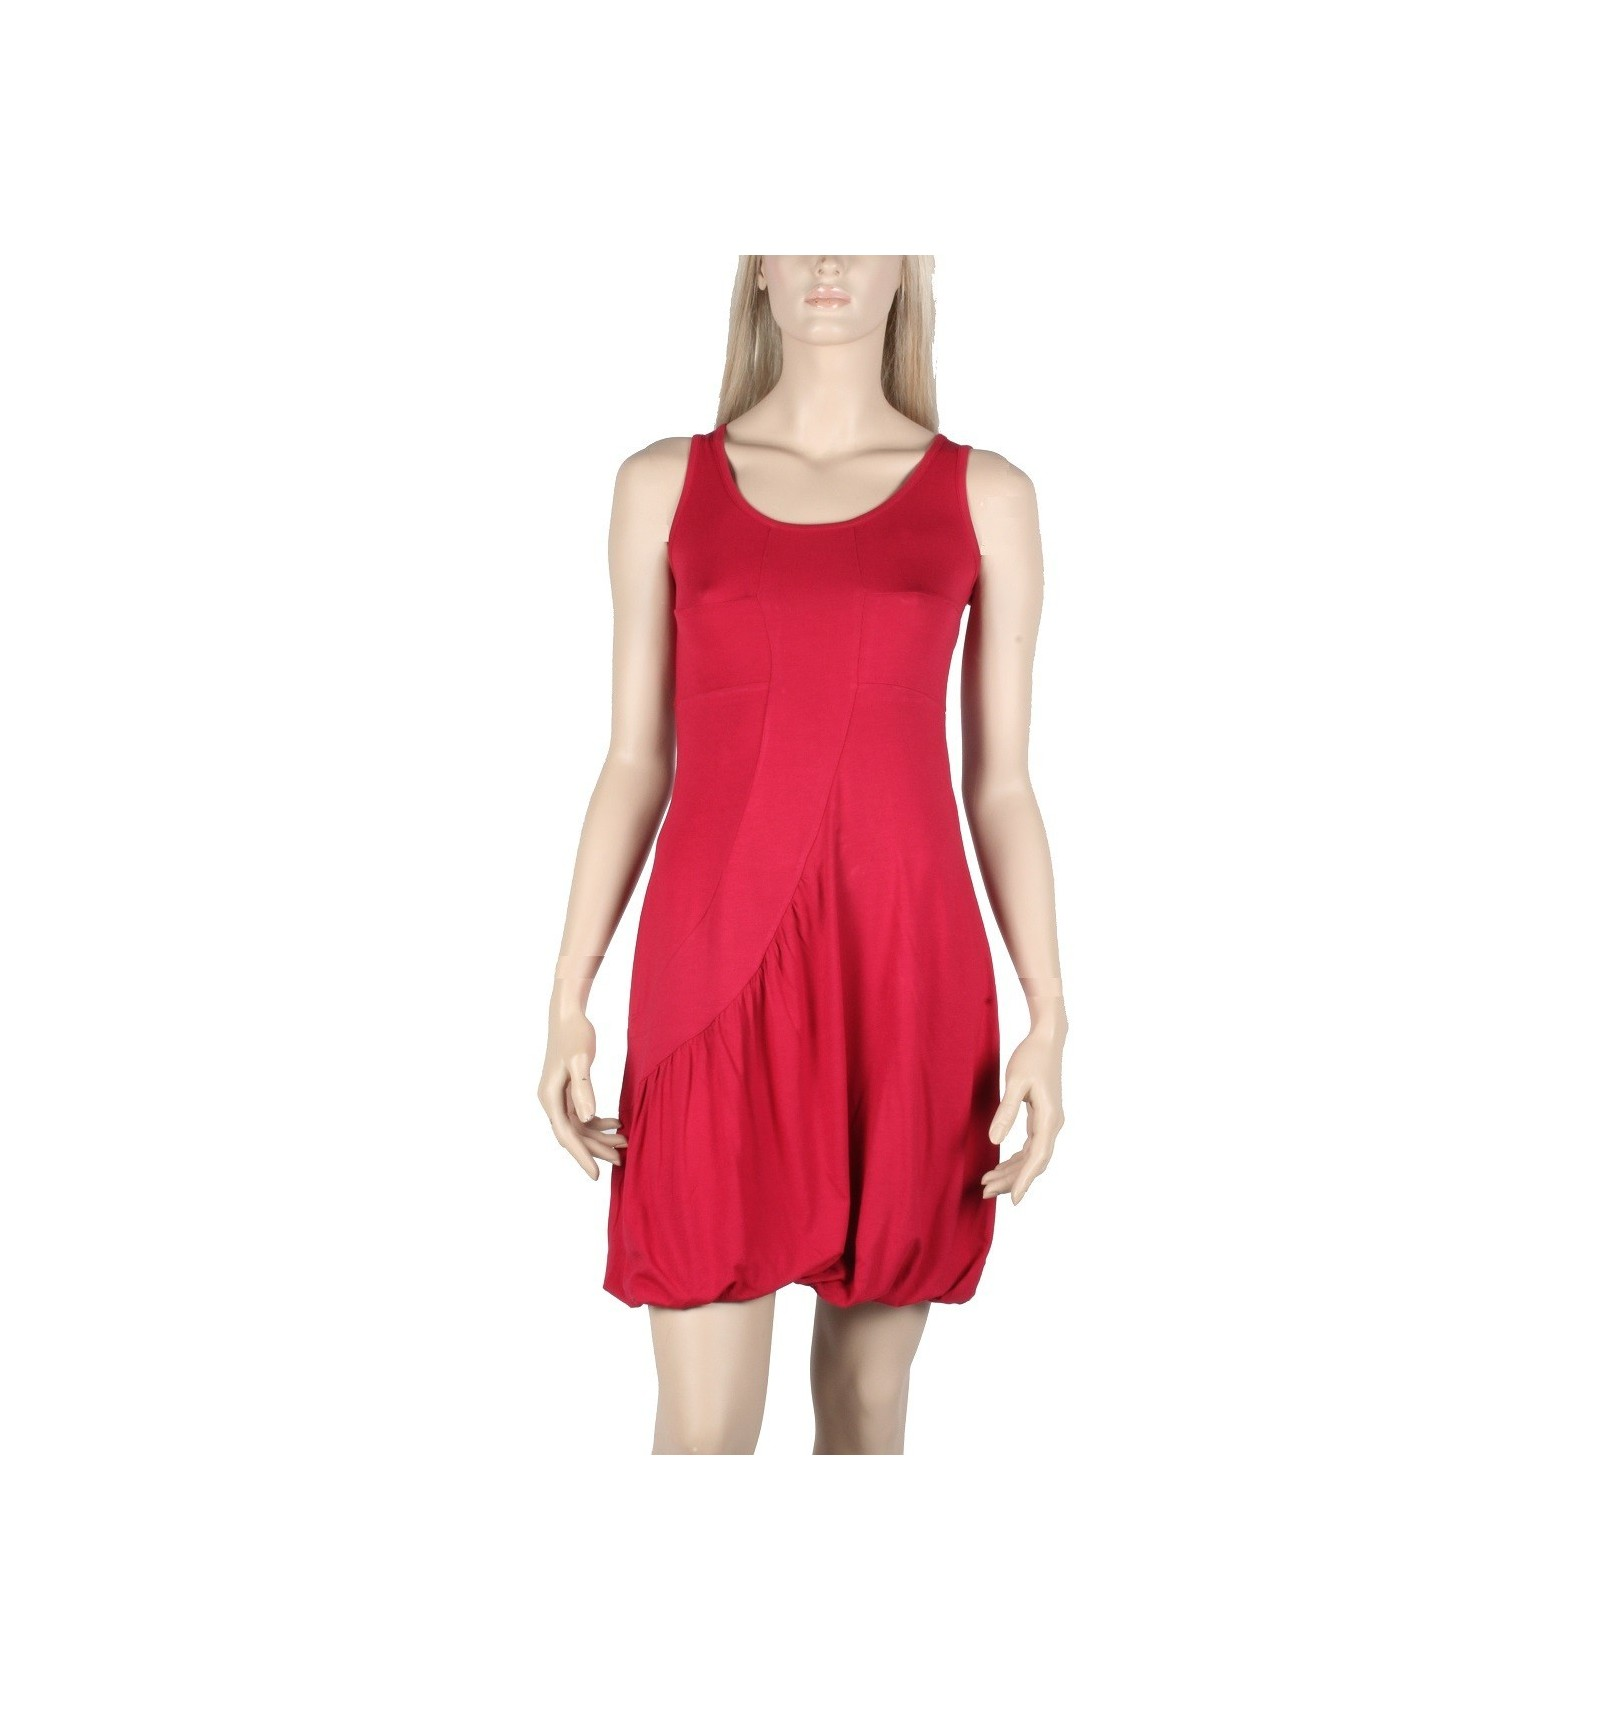 Maloka woman straspberry colored dress on sale on Mode-Lin